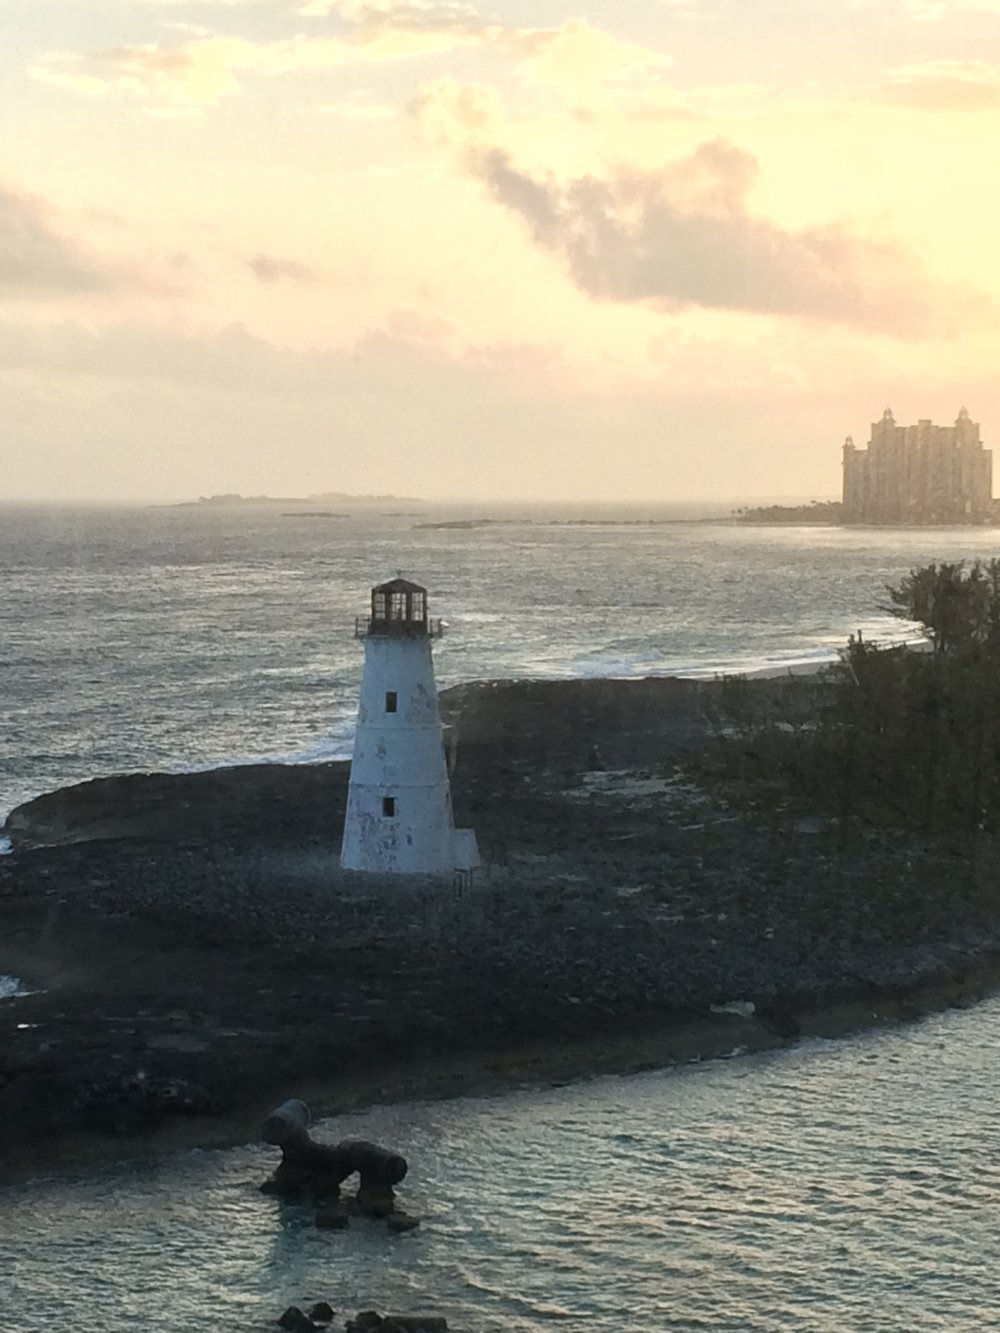 Loving unconditionally and having boundaries are not mutually exclusive. Here's a lighthouse being a beacon and sitting right on a boundary. Unconditionally beaconing away no matter what side of the boundary you're on. (Taken in Nassau.)